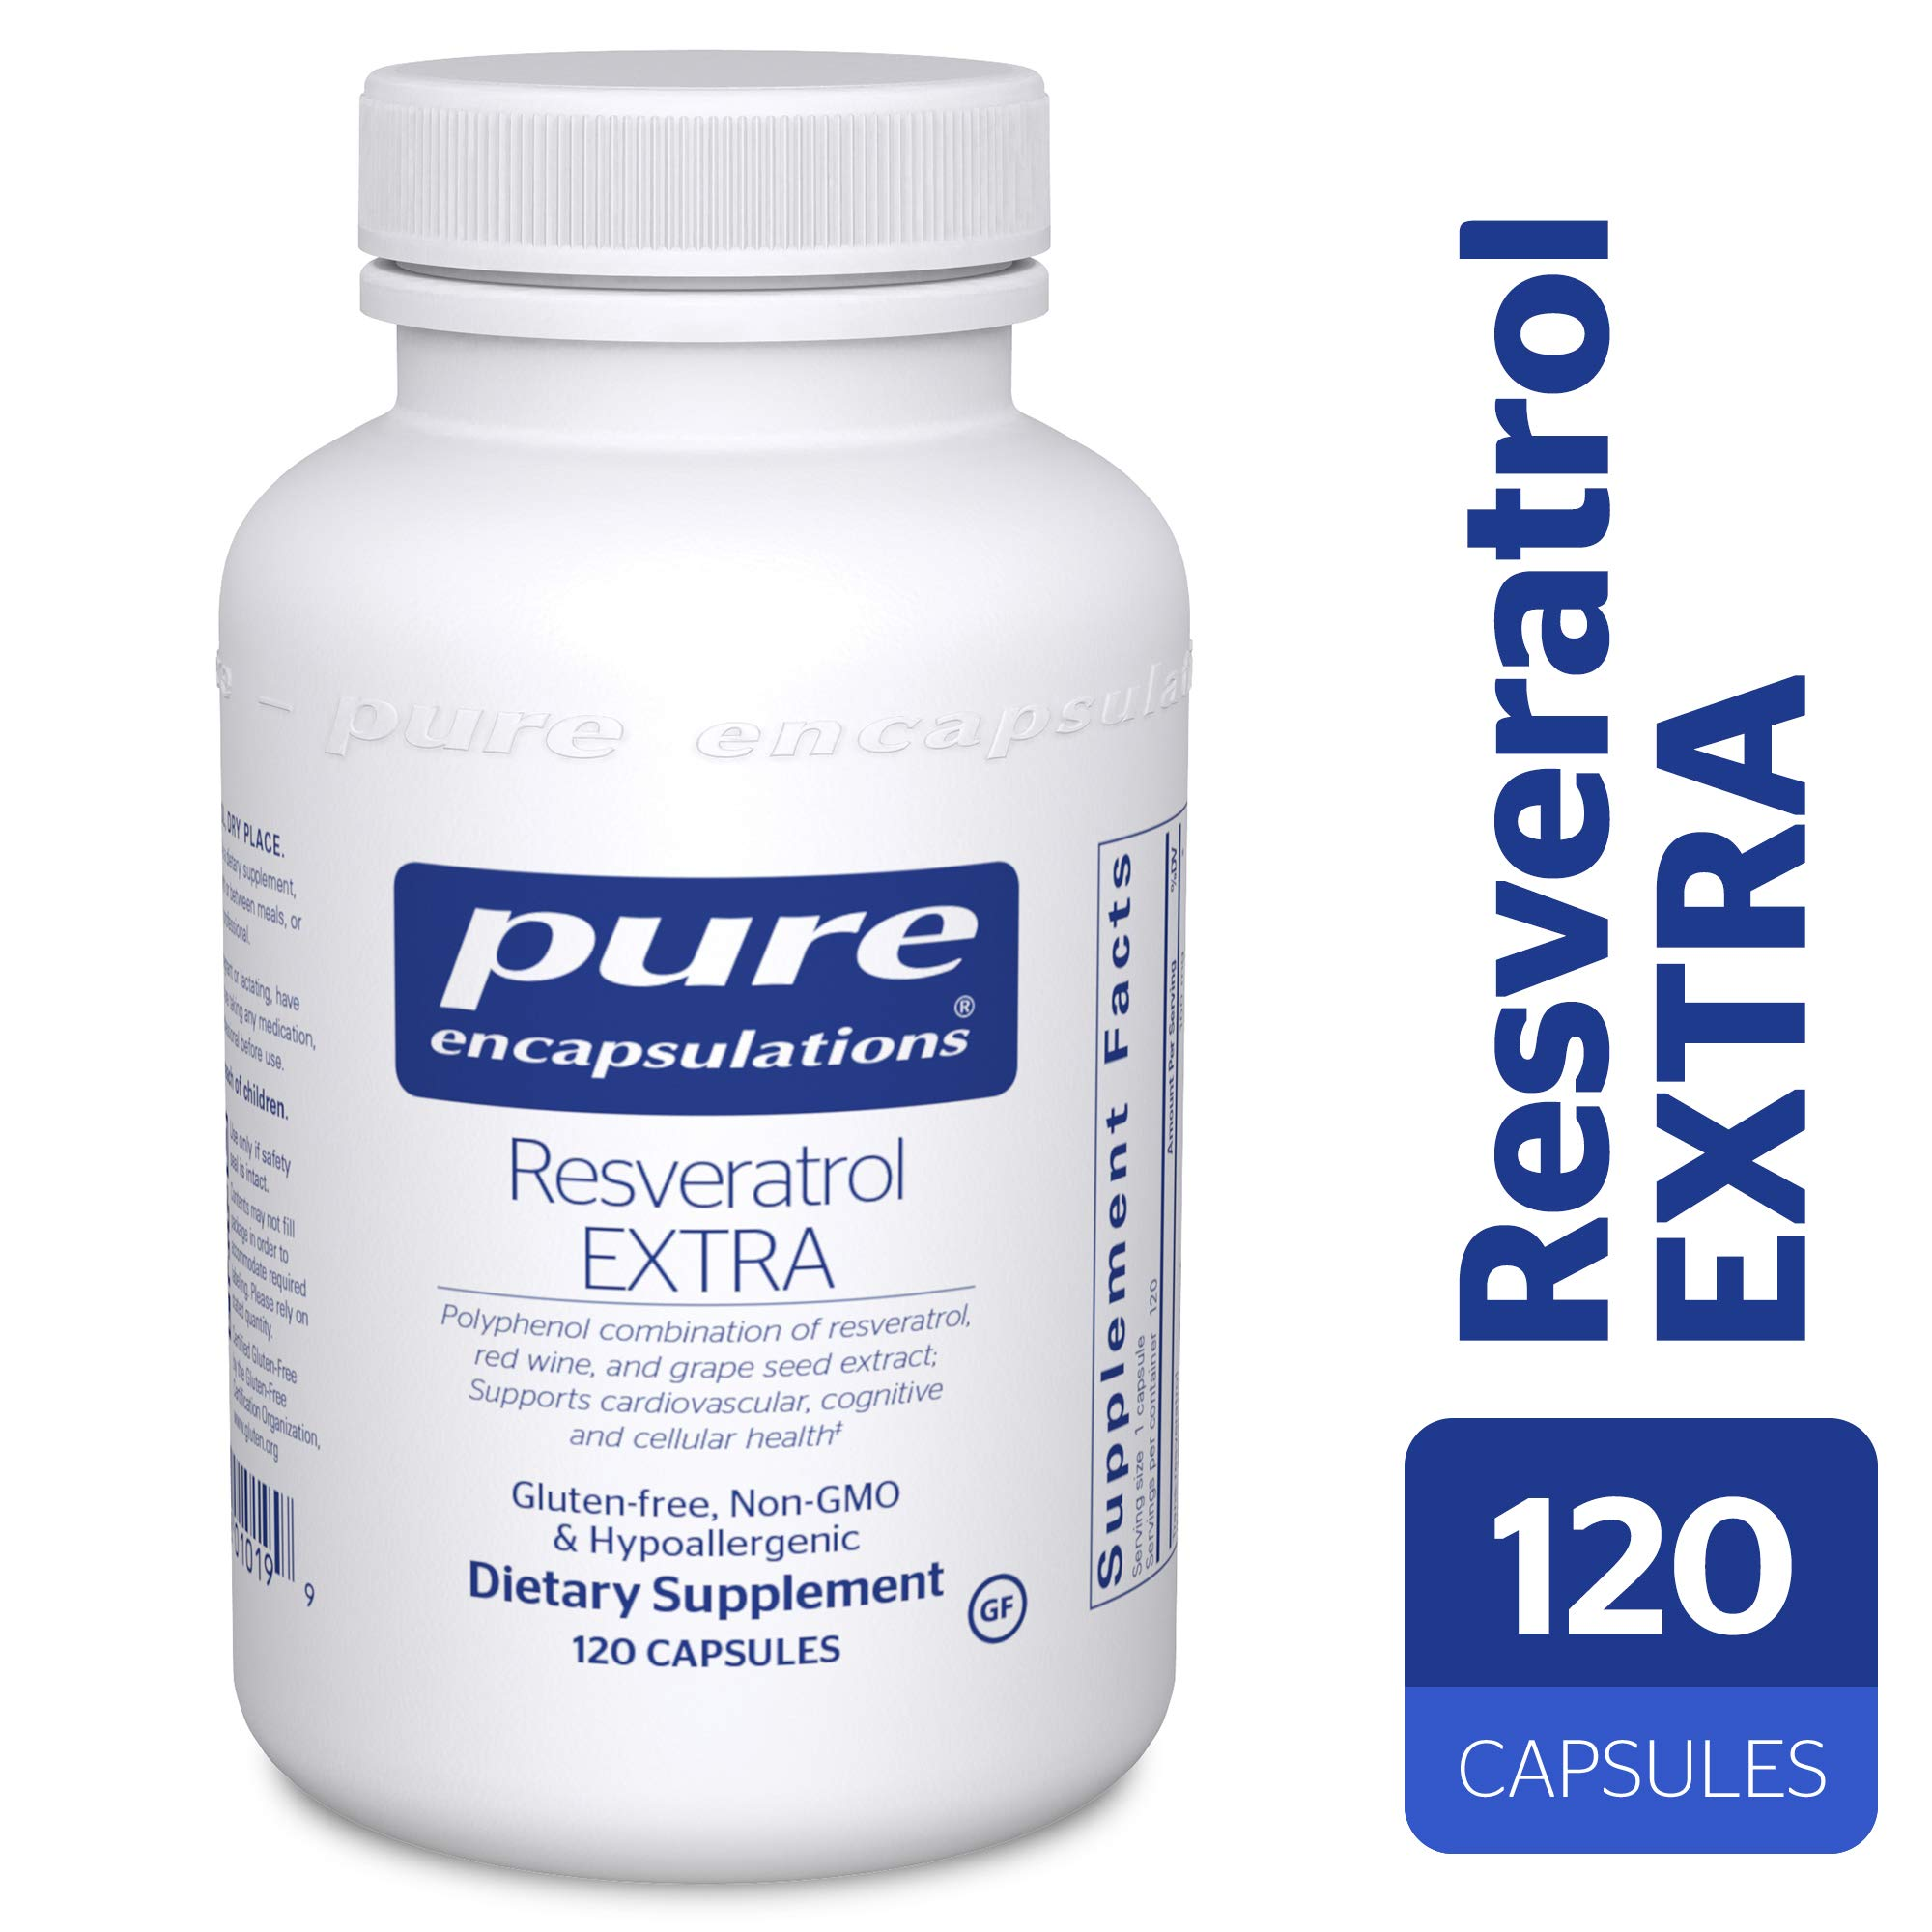 Pure Encapsulations - Resveratrol Extra - Hypoallergenic Dietary Supplement for Healthy Cellular and Cardiovascular Function* - 120 Capsules by Pure Encapsulations